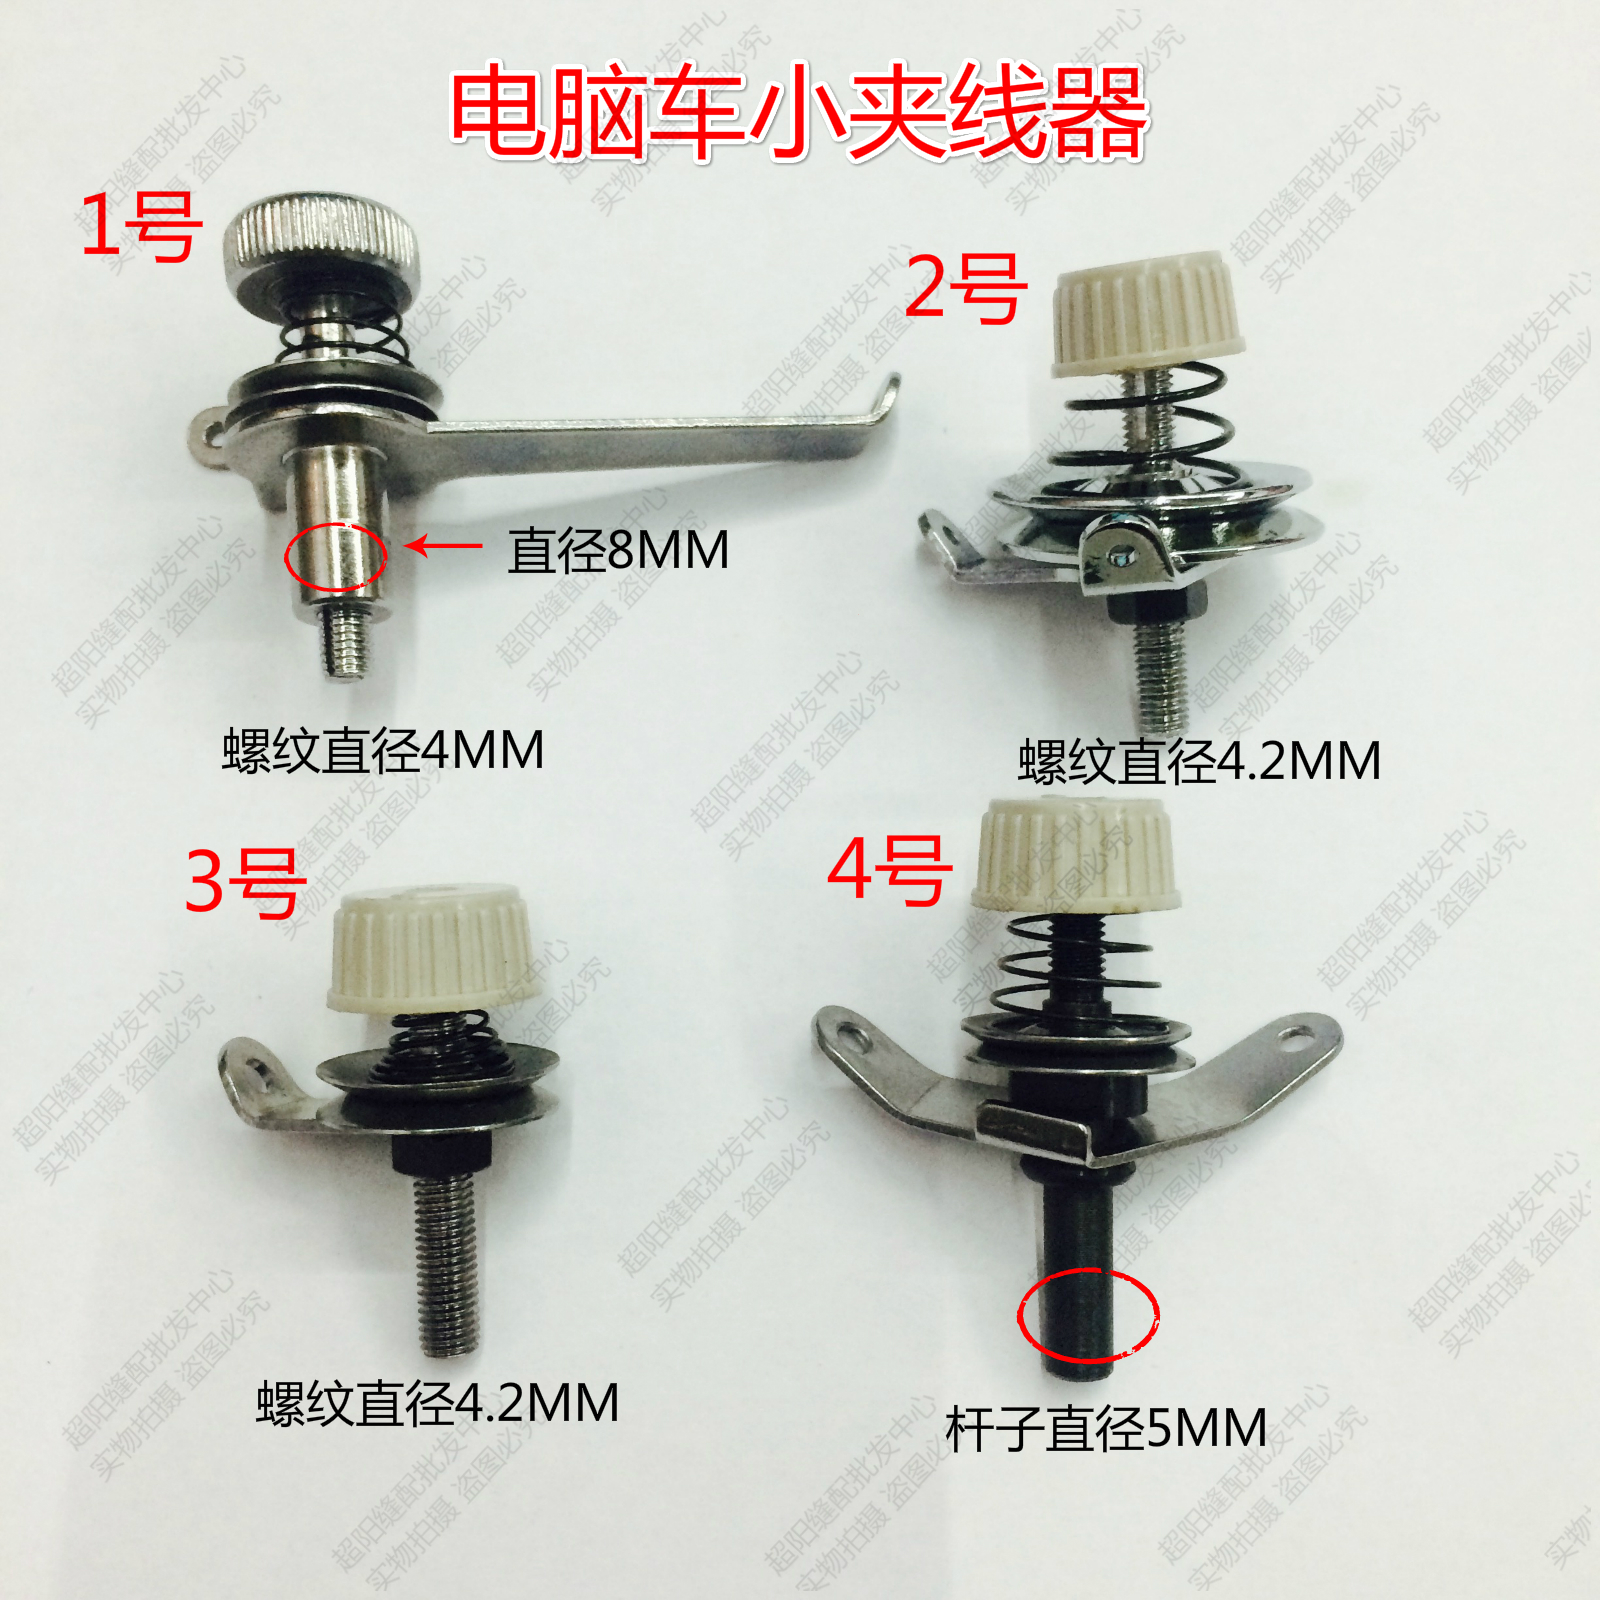 Industrial sewing machine accessories computer car shearing splint overwire